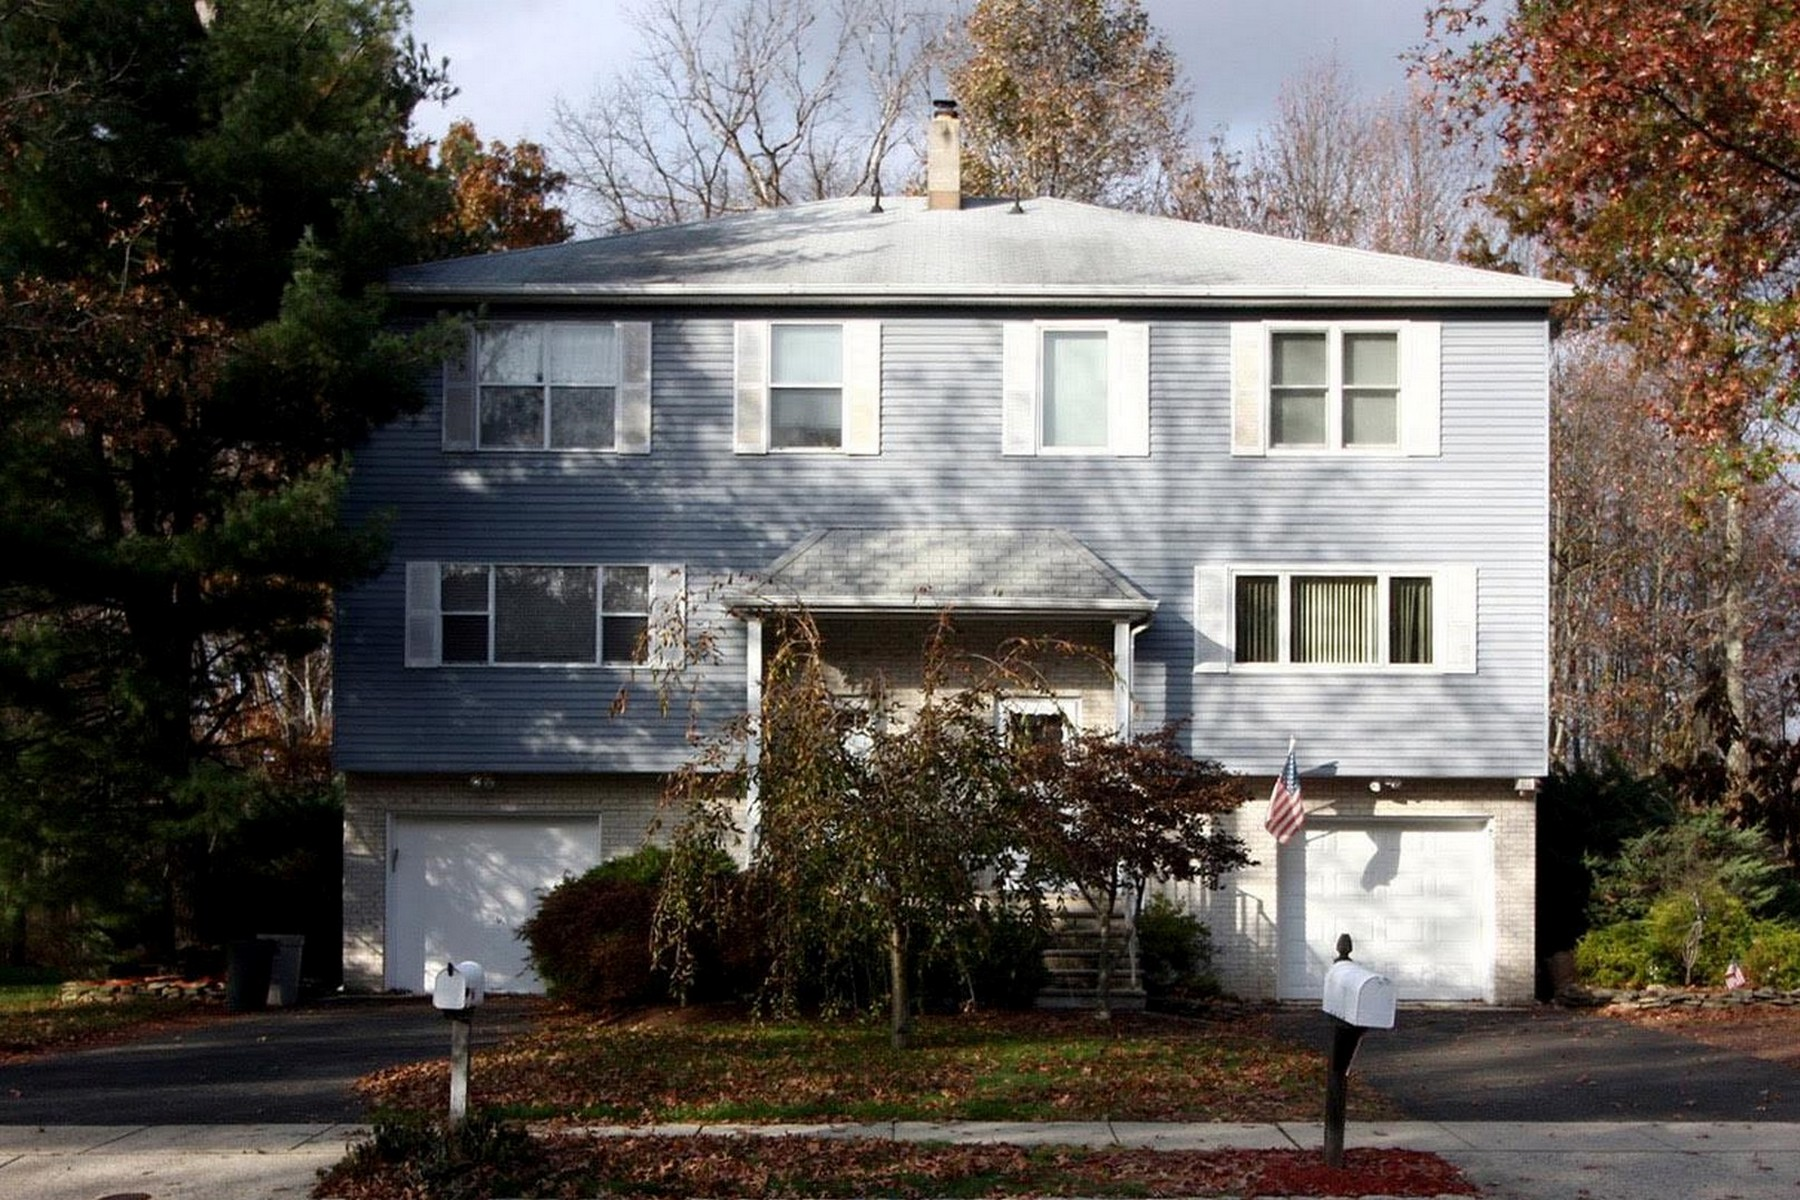 Condominium for Sale at 62 Dortmunder Drive Manalapan, New Jersey 07726 United States